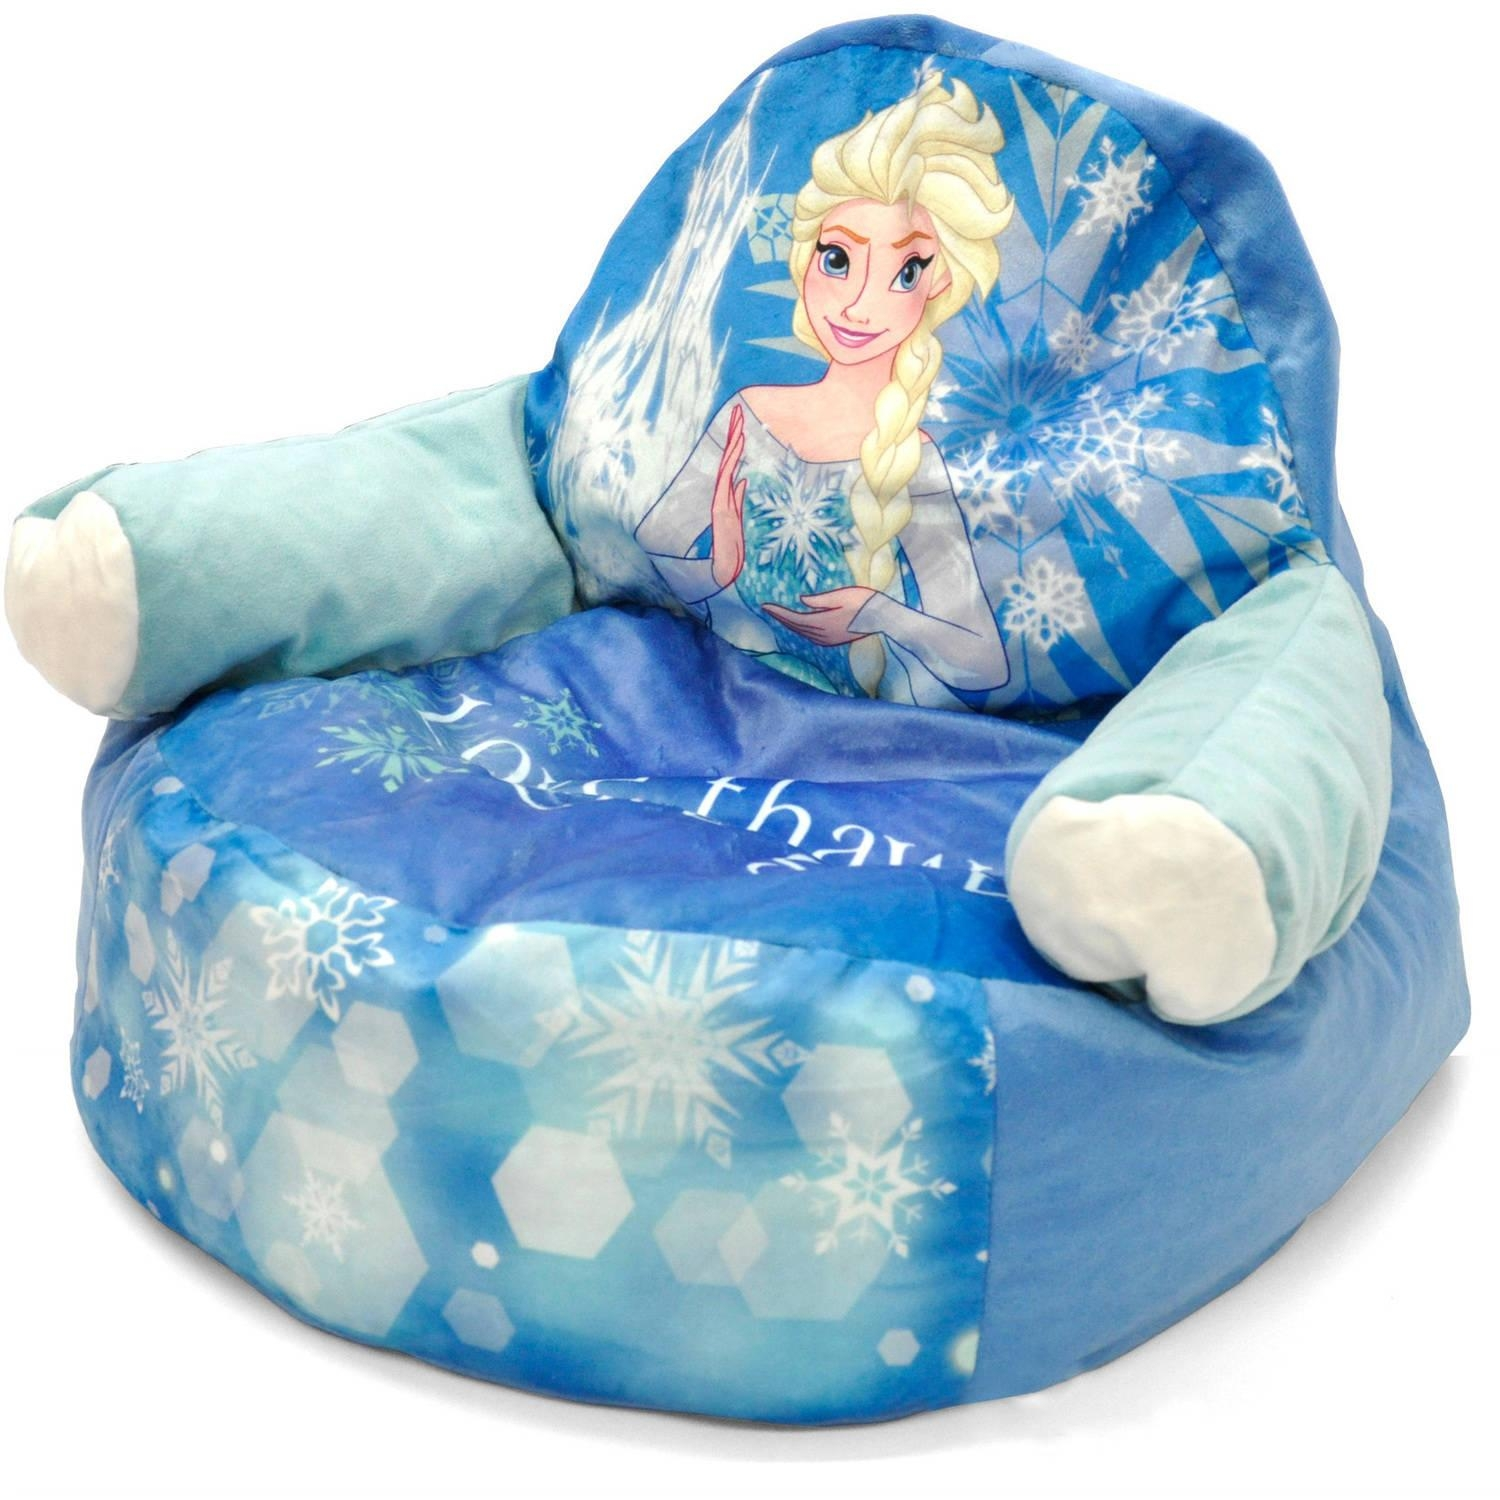 Disney Frozen Sofa Bean Bag Chair With Piping – Walmart Inside Disney Sofa Chairs (Image 2 of 20)